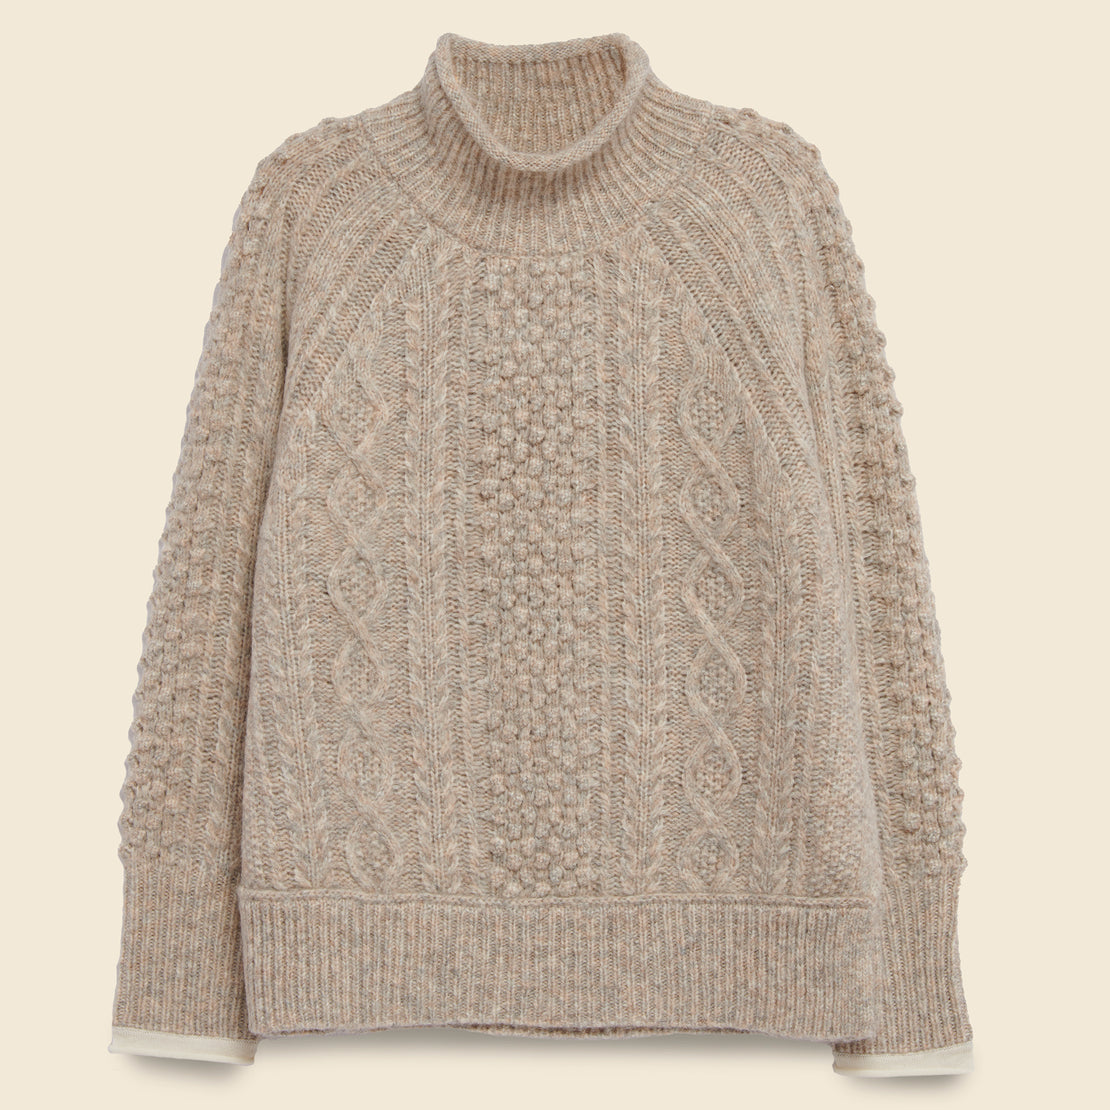 Alex Mill Kamil Cable Sweater - Driftwood